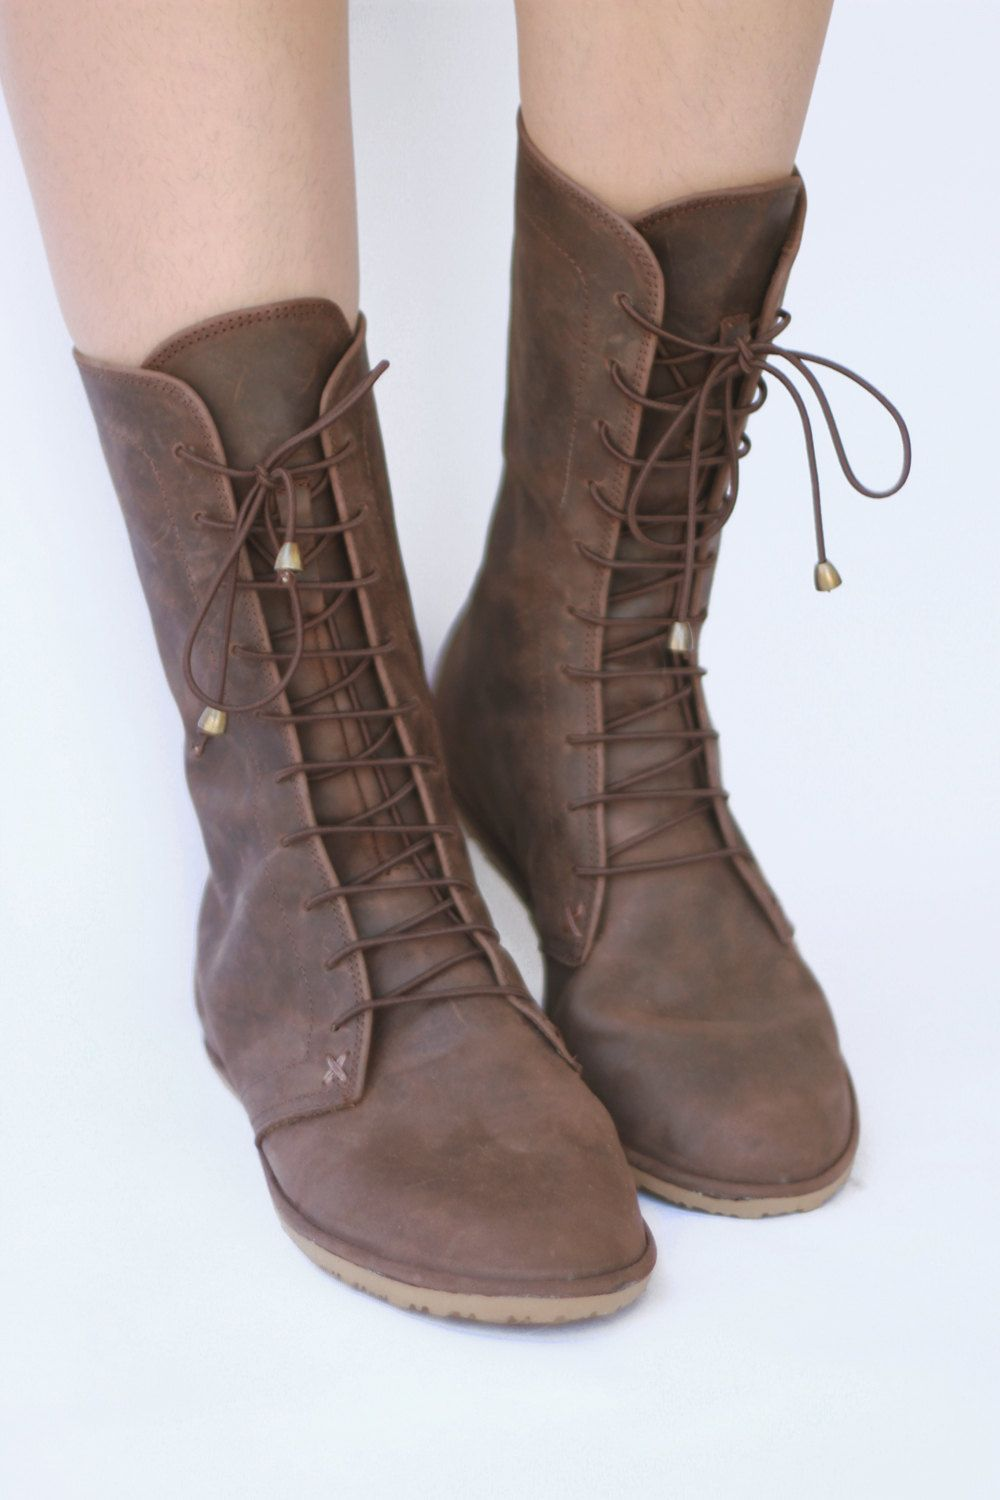 Deco boots in Brown - Handmade Leather Boots - CUSTOM FIT